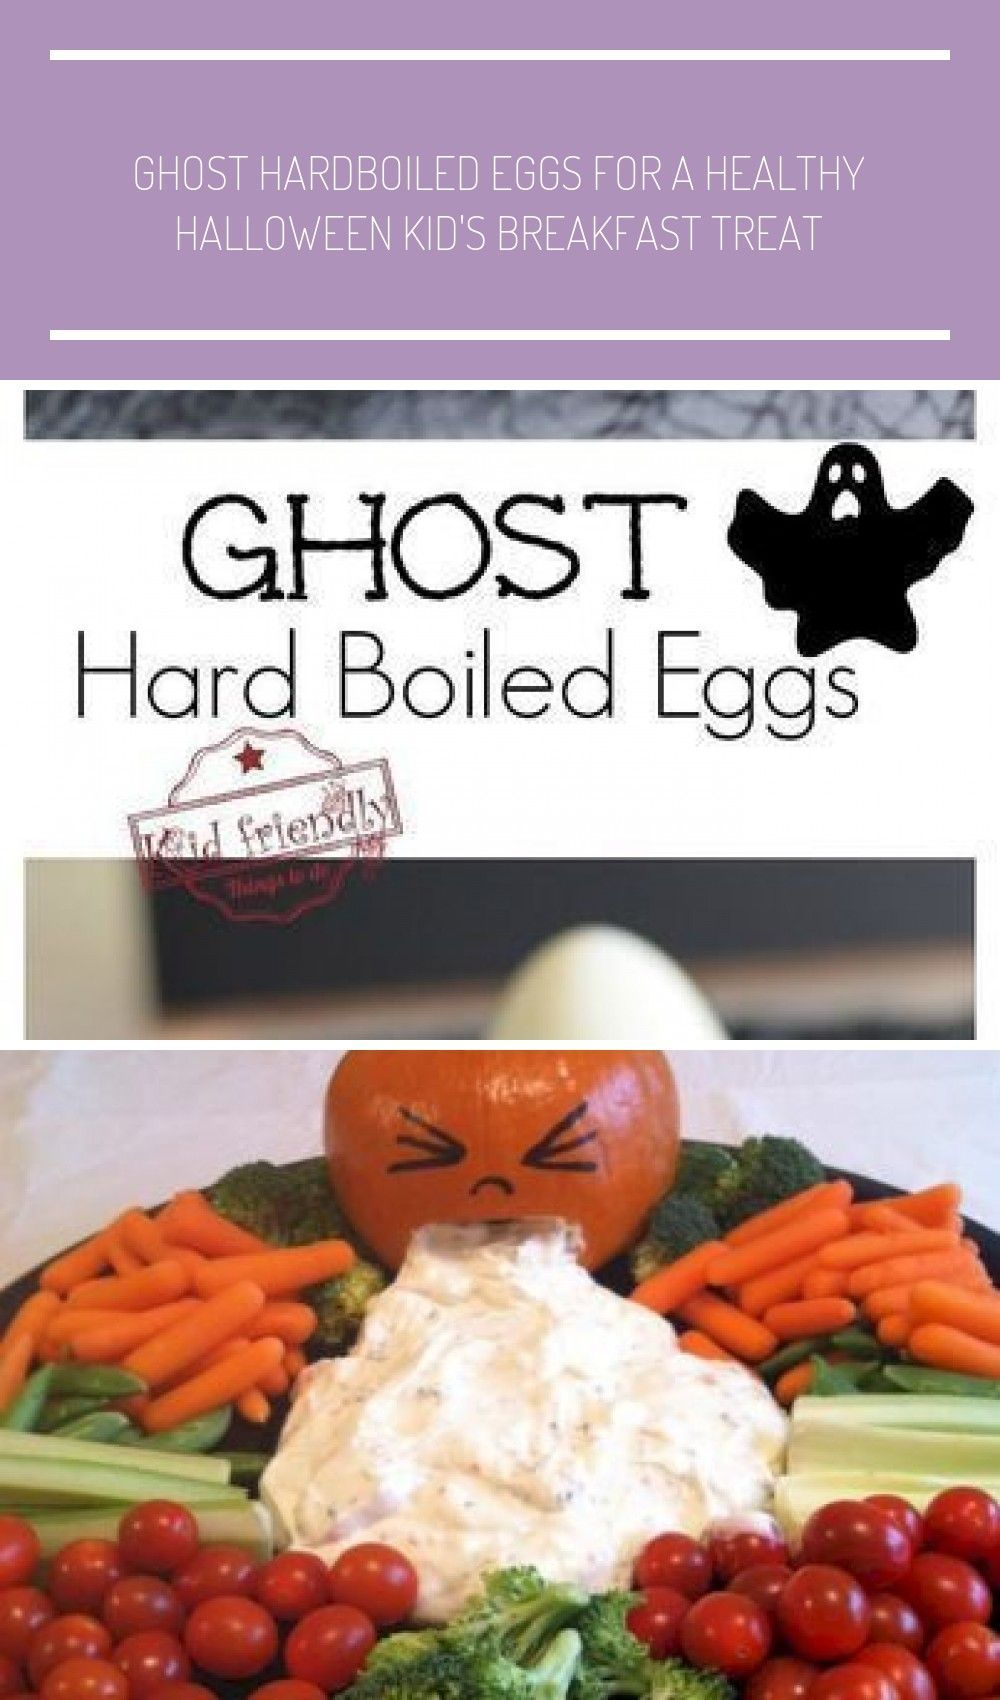 Ghost Hardboiled Eggs for a Healthy Halloween Kid's Breakfast Treat - This is so easy to make and fun for kids - www.kidfriendlythingstodo.com #halloween essen Ghost Hardboiled Eggs for a Healthy Halloween Kid's Breakfast Treat #halloweenbreakfastforkids Ghost Hardboiled Eggs for a Healthy Halloween Kid's Breakfast Treat - This is so easy to make and fun for kids - www.kidfriendlythingstodo.com #halloween essen Ghost Hardboiled Eggs for a Healthy Halloween Kid's Breakfast Treat #halloweenbreakfastforkids